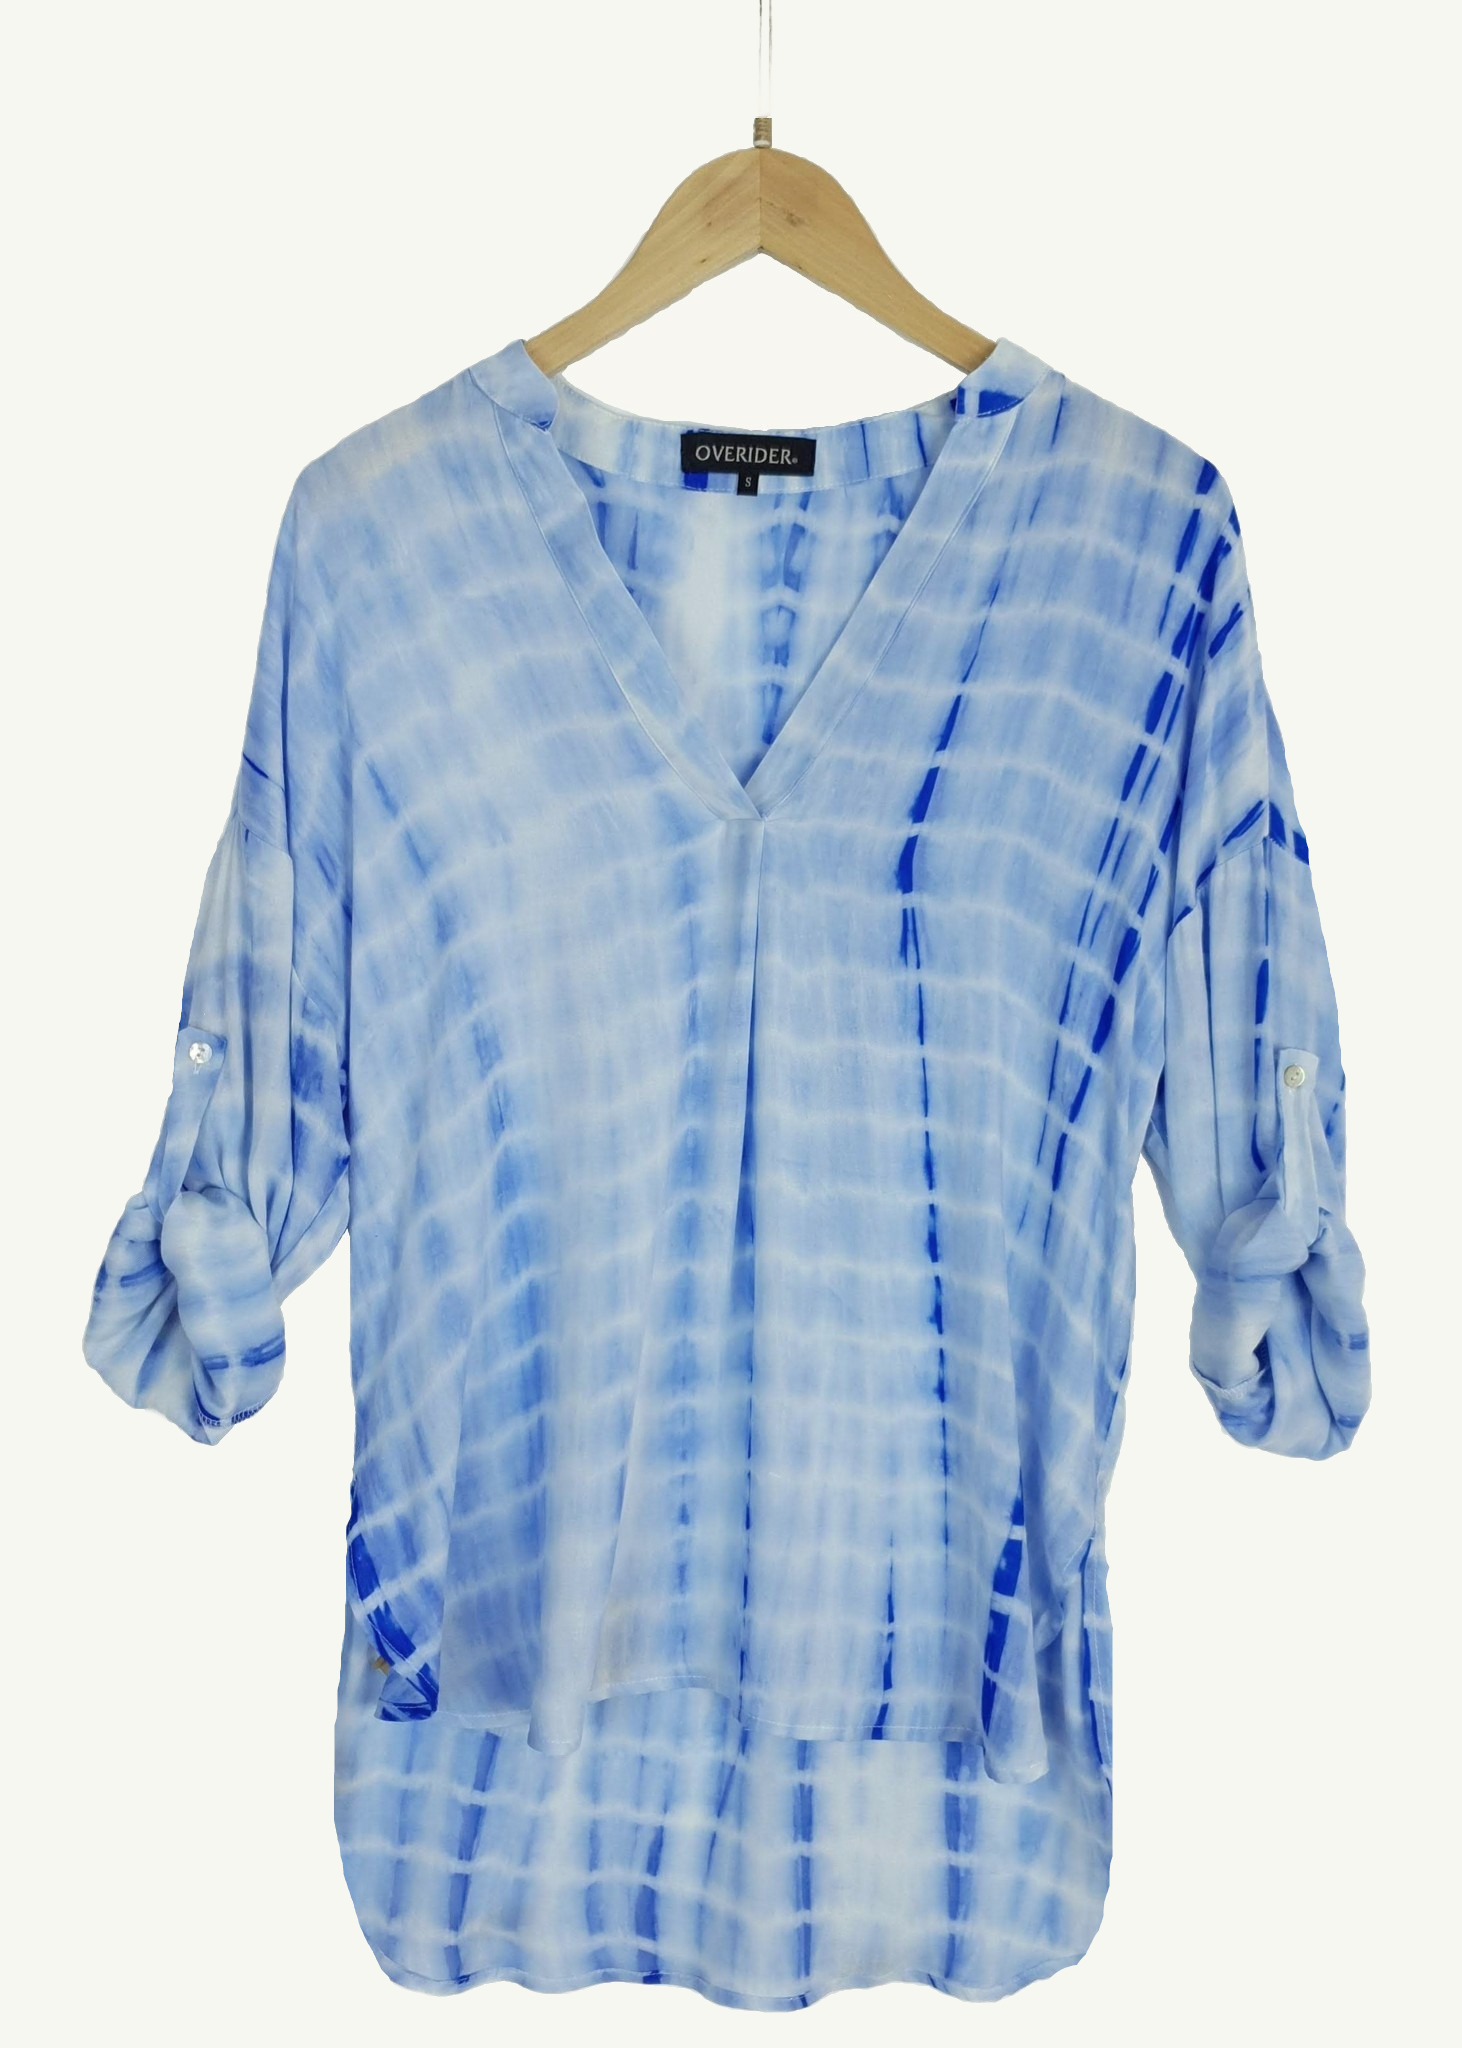 CAROLA - Watermark Summer Shirt - Blue